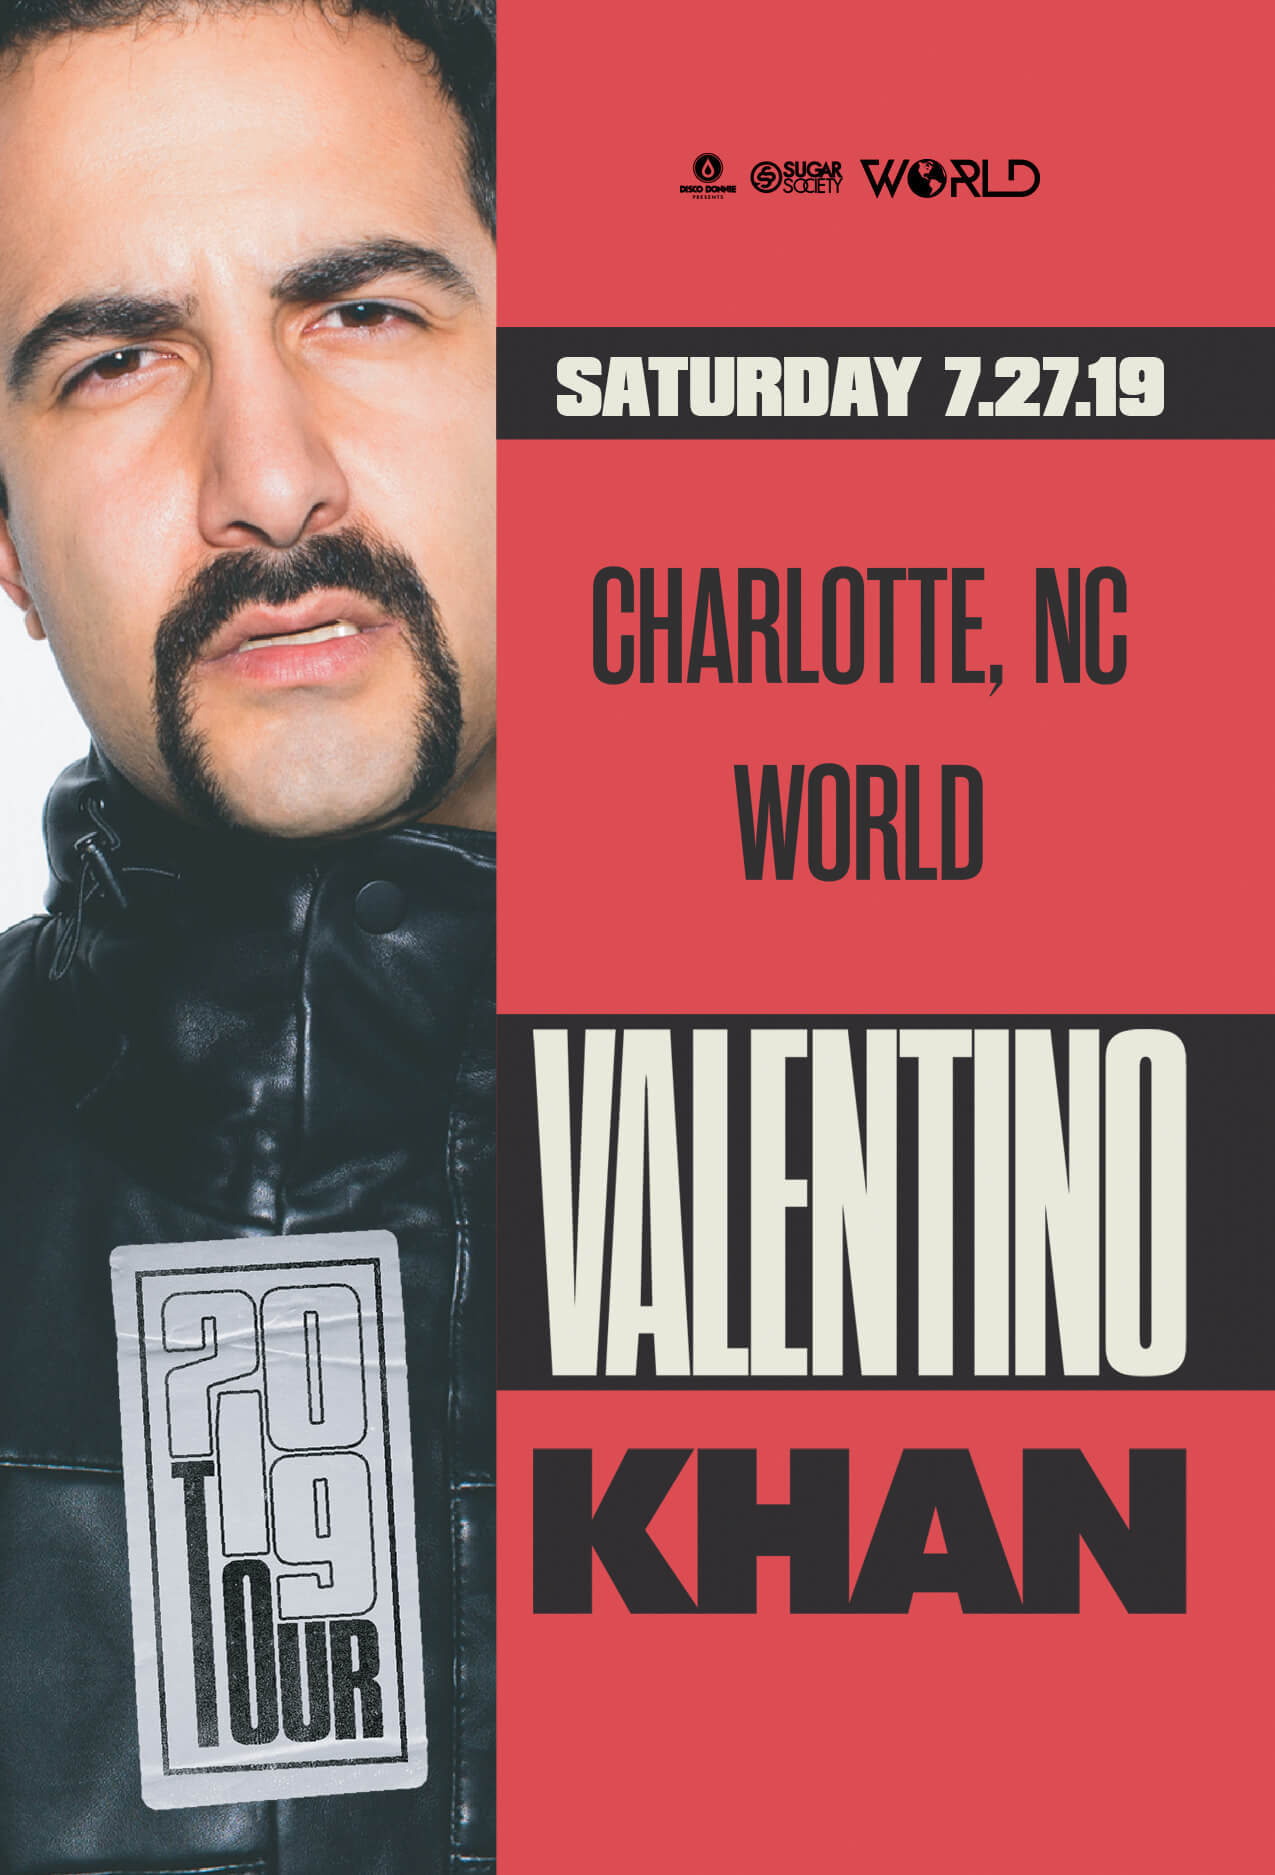 Valentino Khan in Charlotte